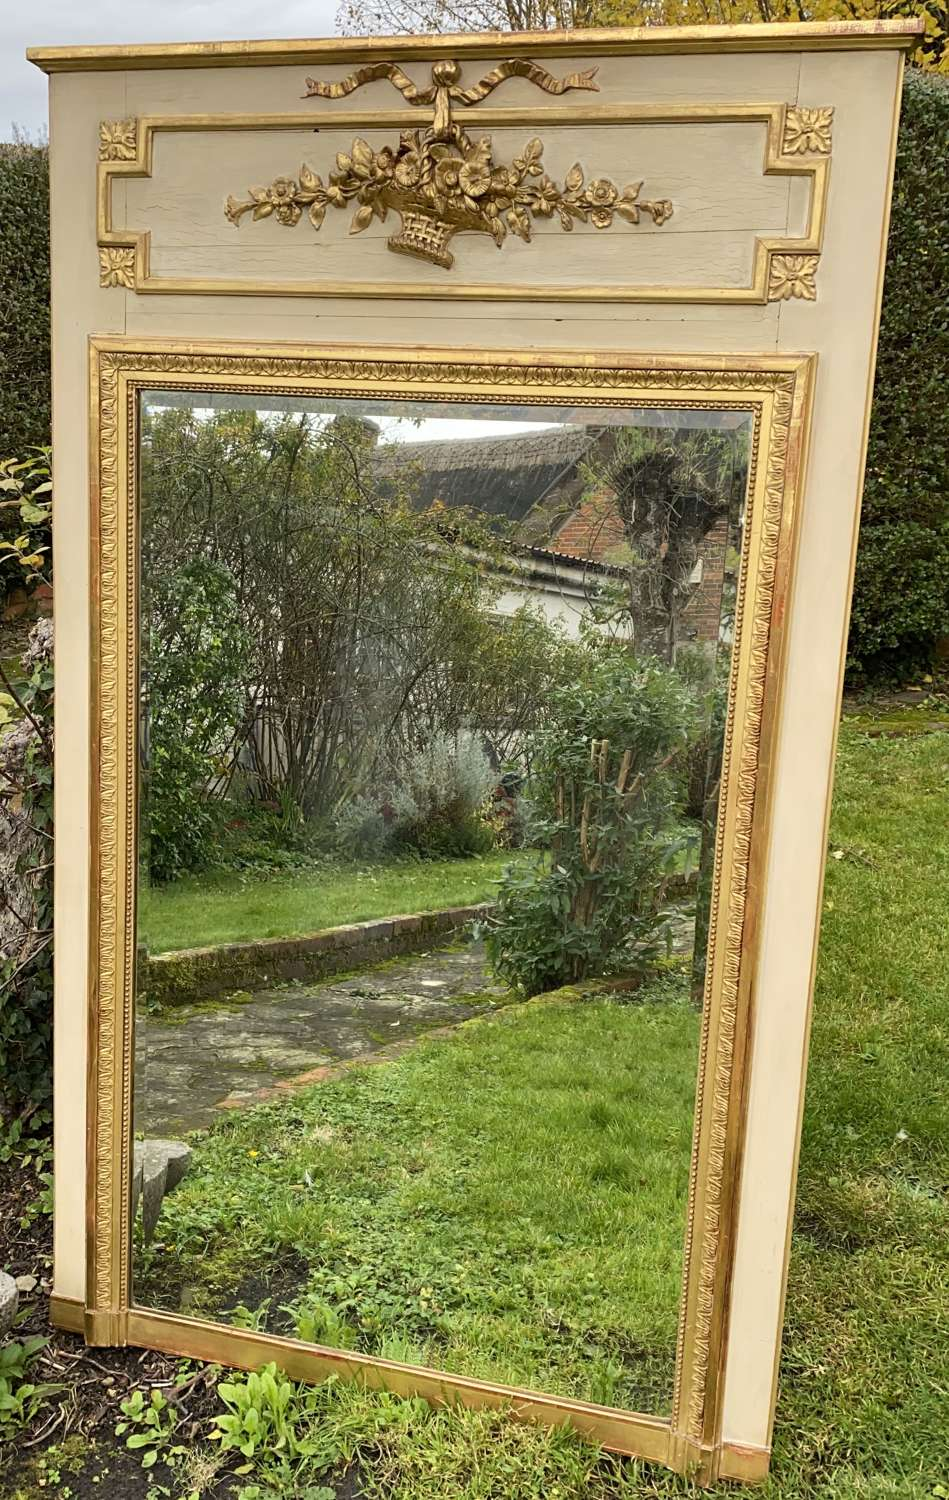 Painted and gilded Trumeau mirror